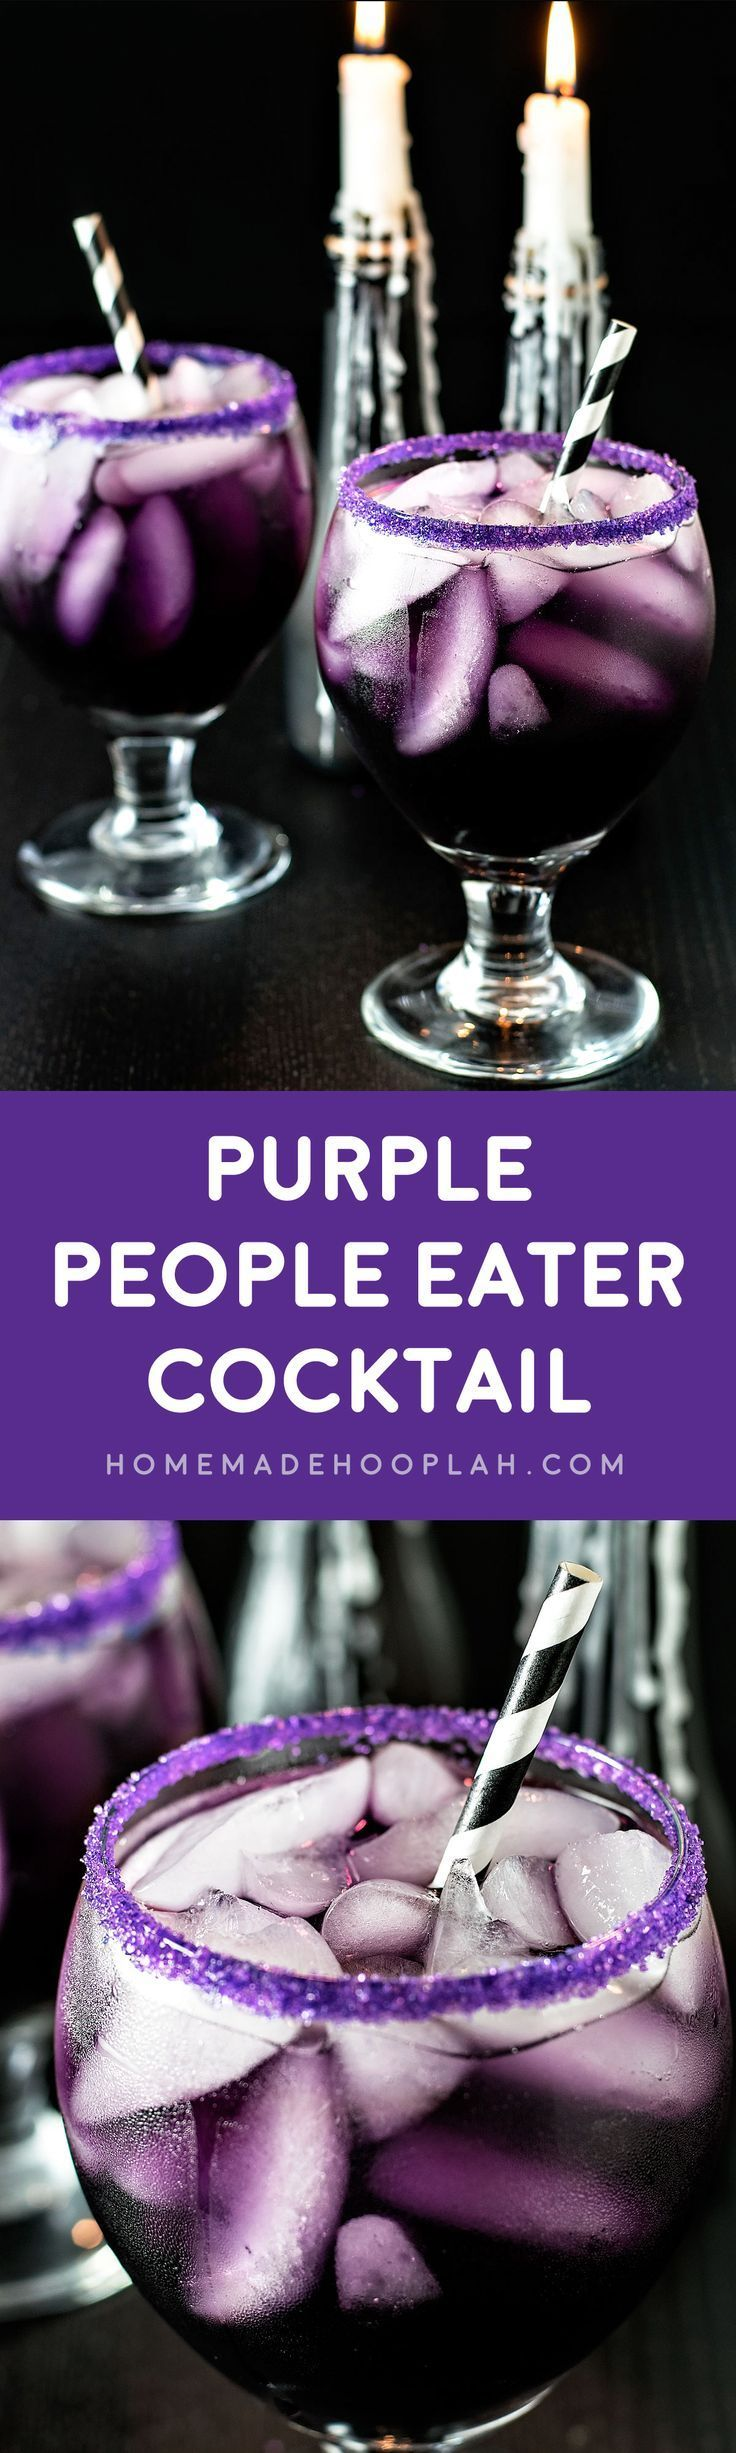 Purple People Eater Cocktail! A tasty (and creepy!) cocktail that get's it's purple hue from blue curacao, grenadine, and cranberry juice. | HomemadeHooplah.com